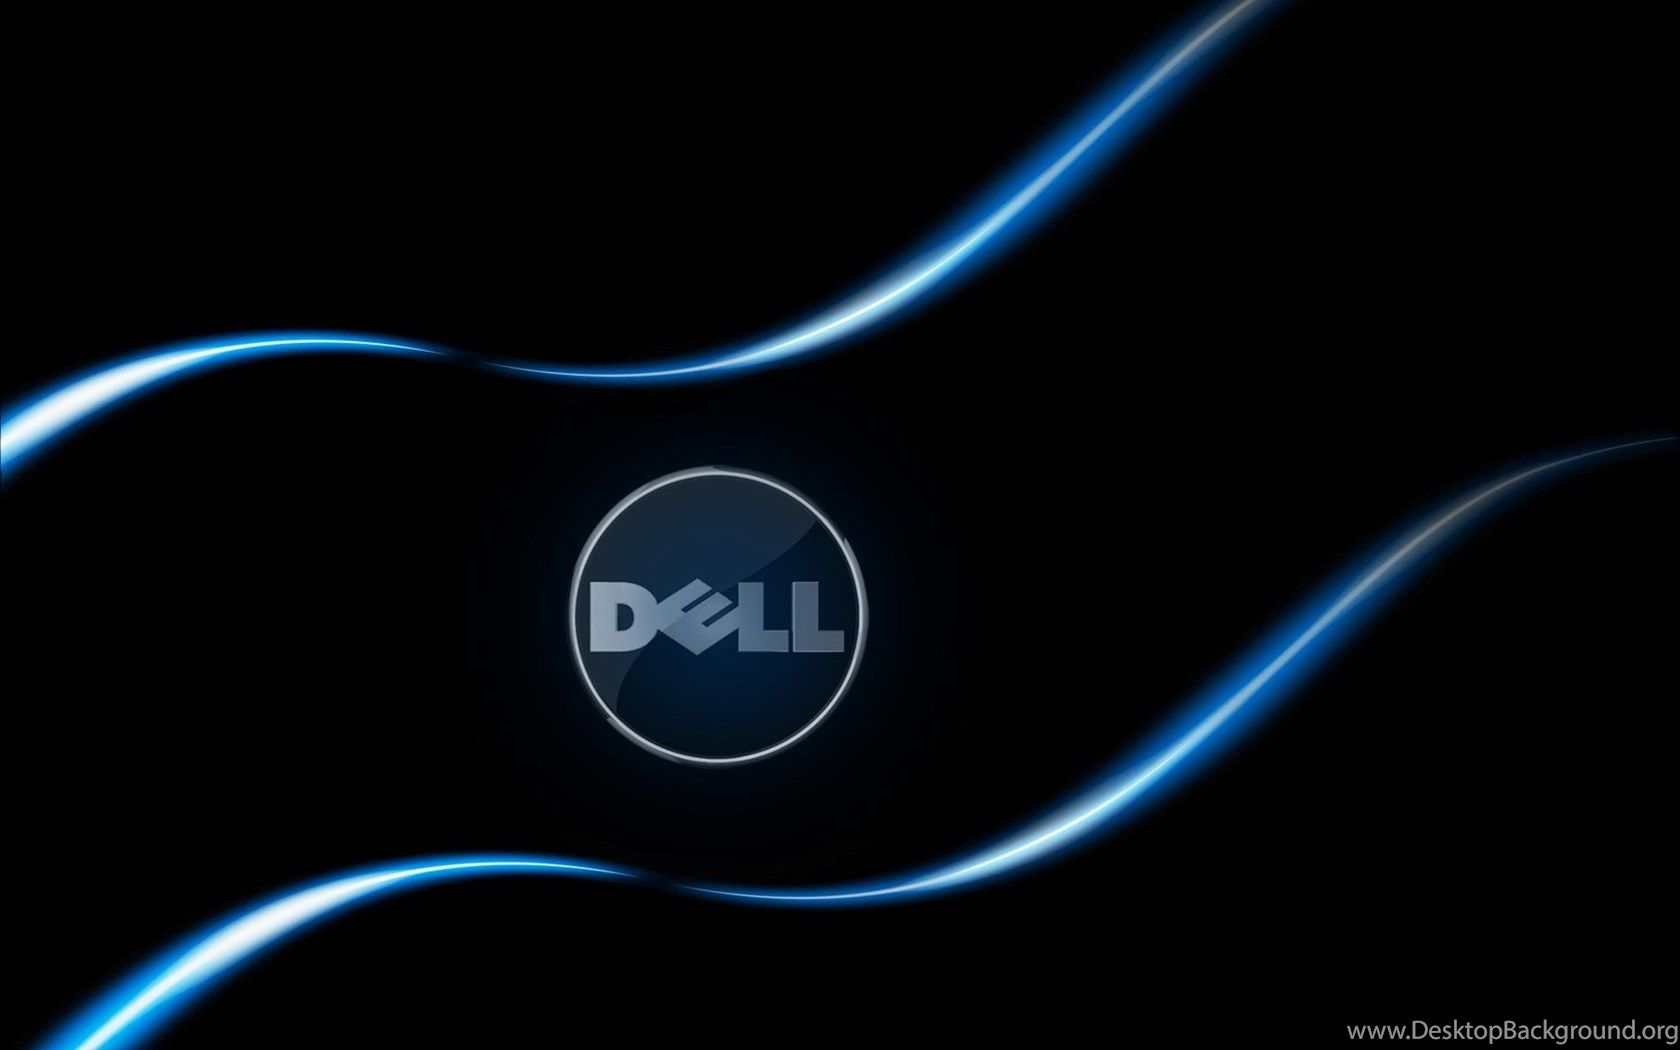 1680x1050 Dell Xps Wallpapers Wallpapers Res Dell Technology Images Dell ...